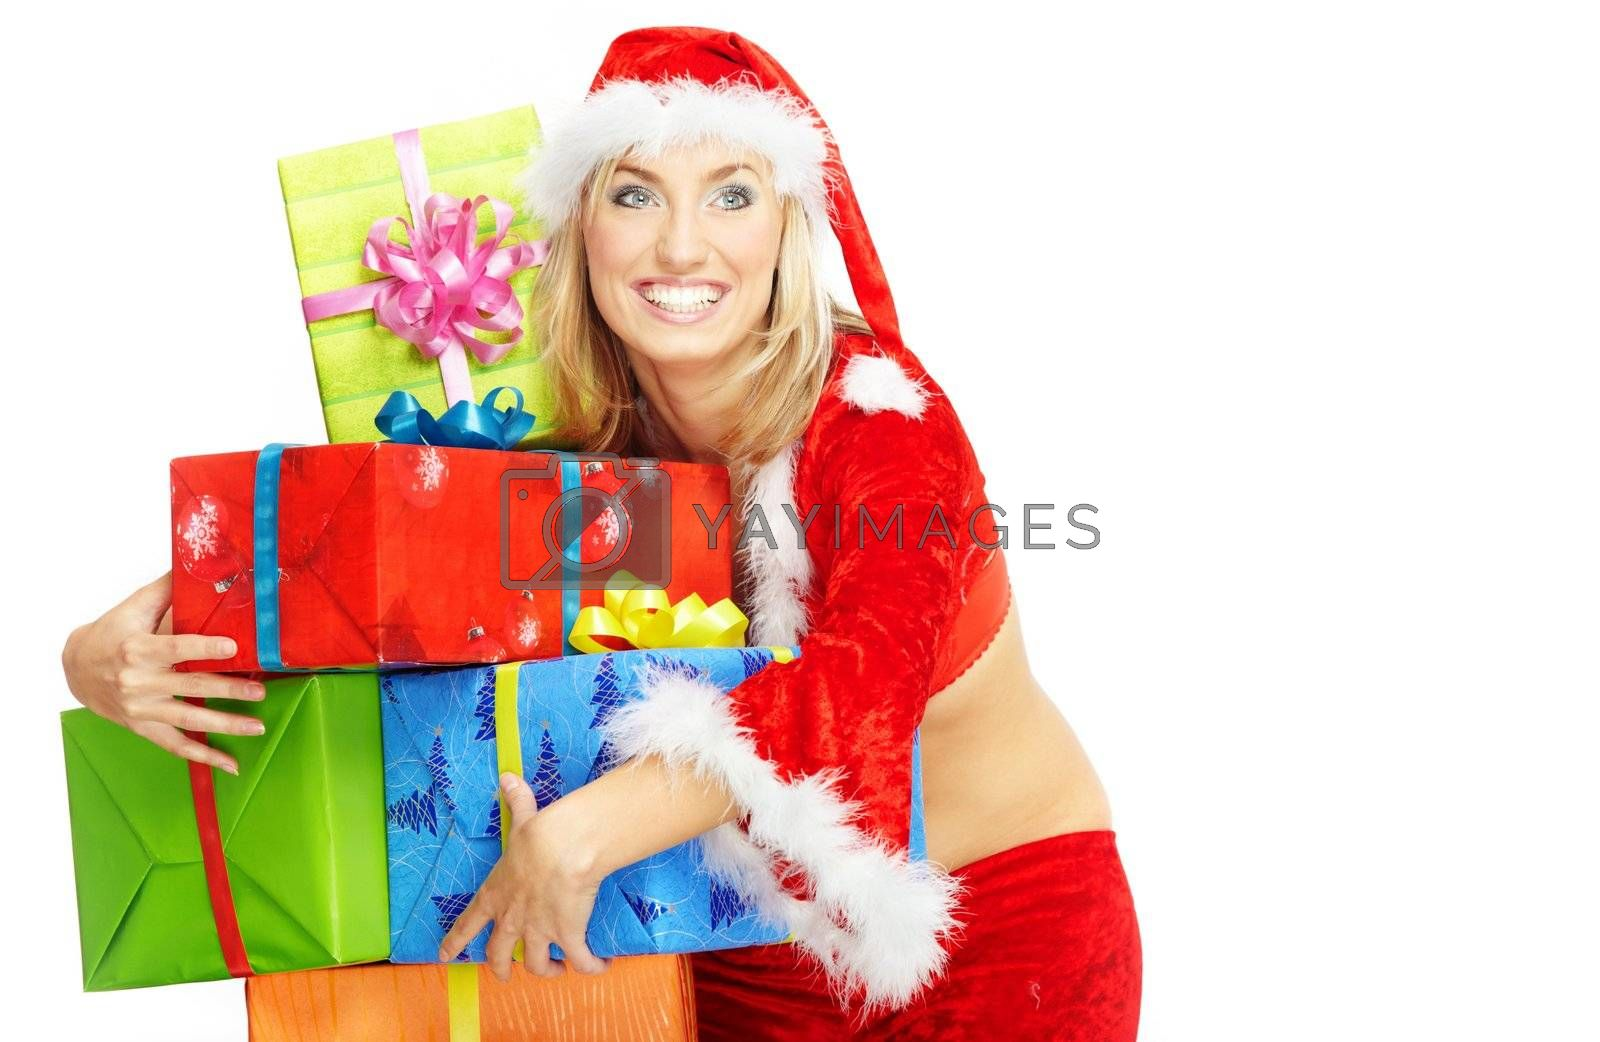 Smiling happy lady in the red Santa Claus costume holding gift boxes on a white background